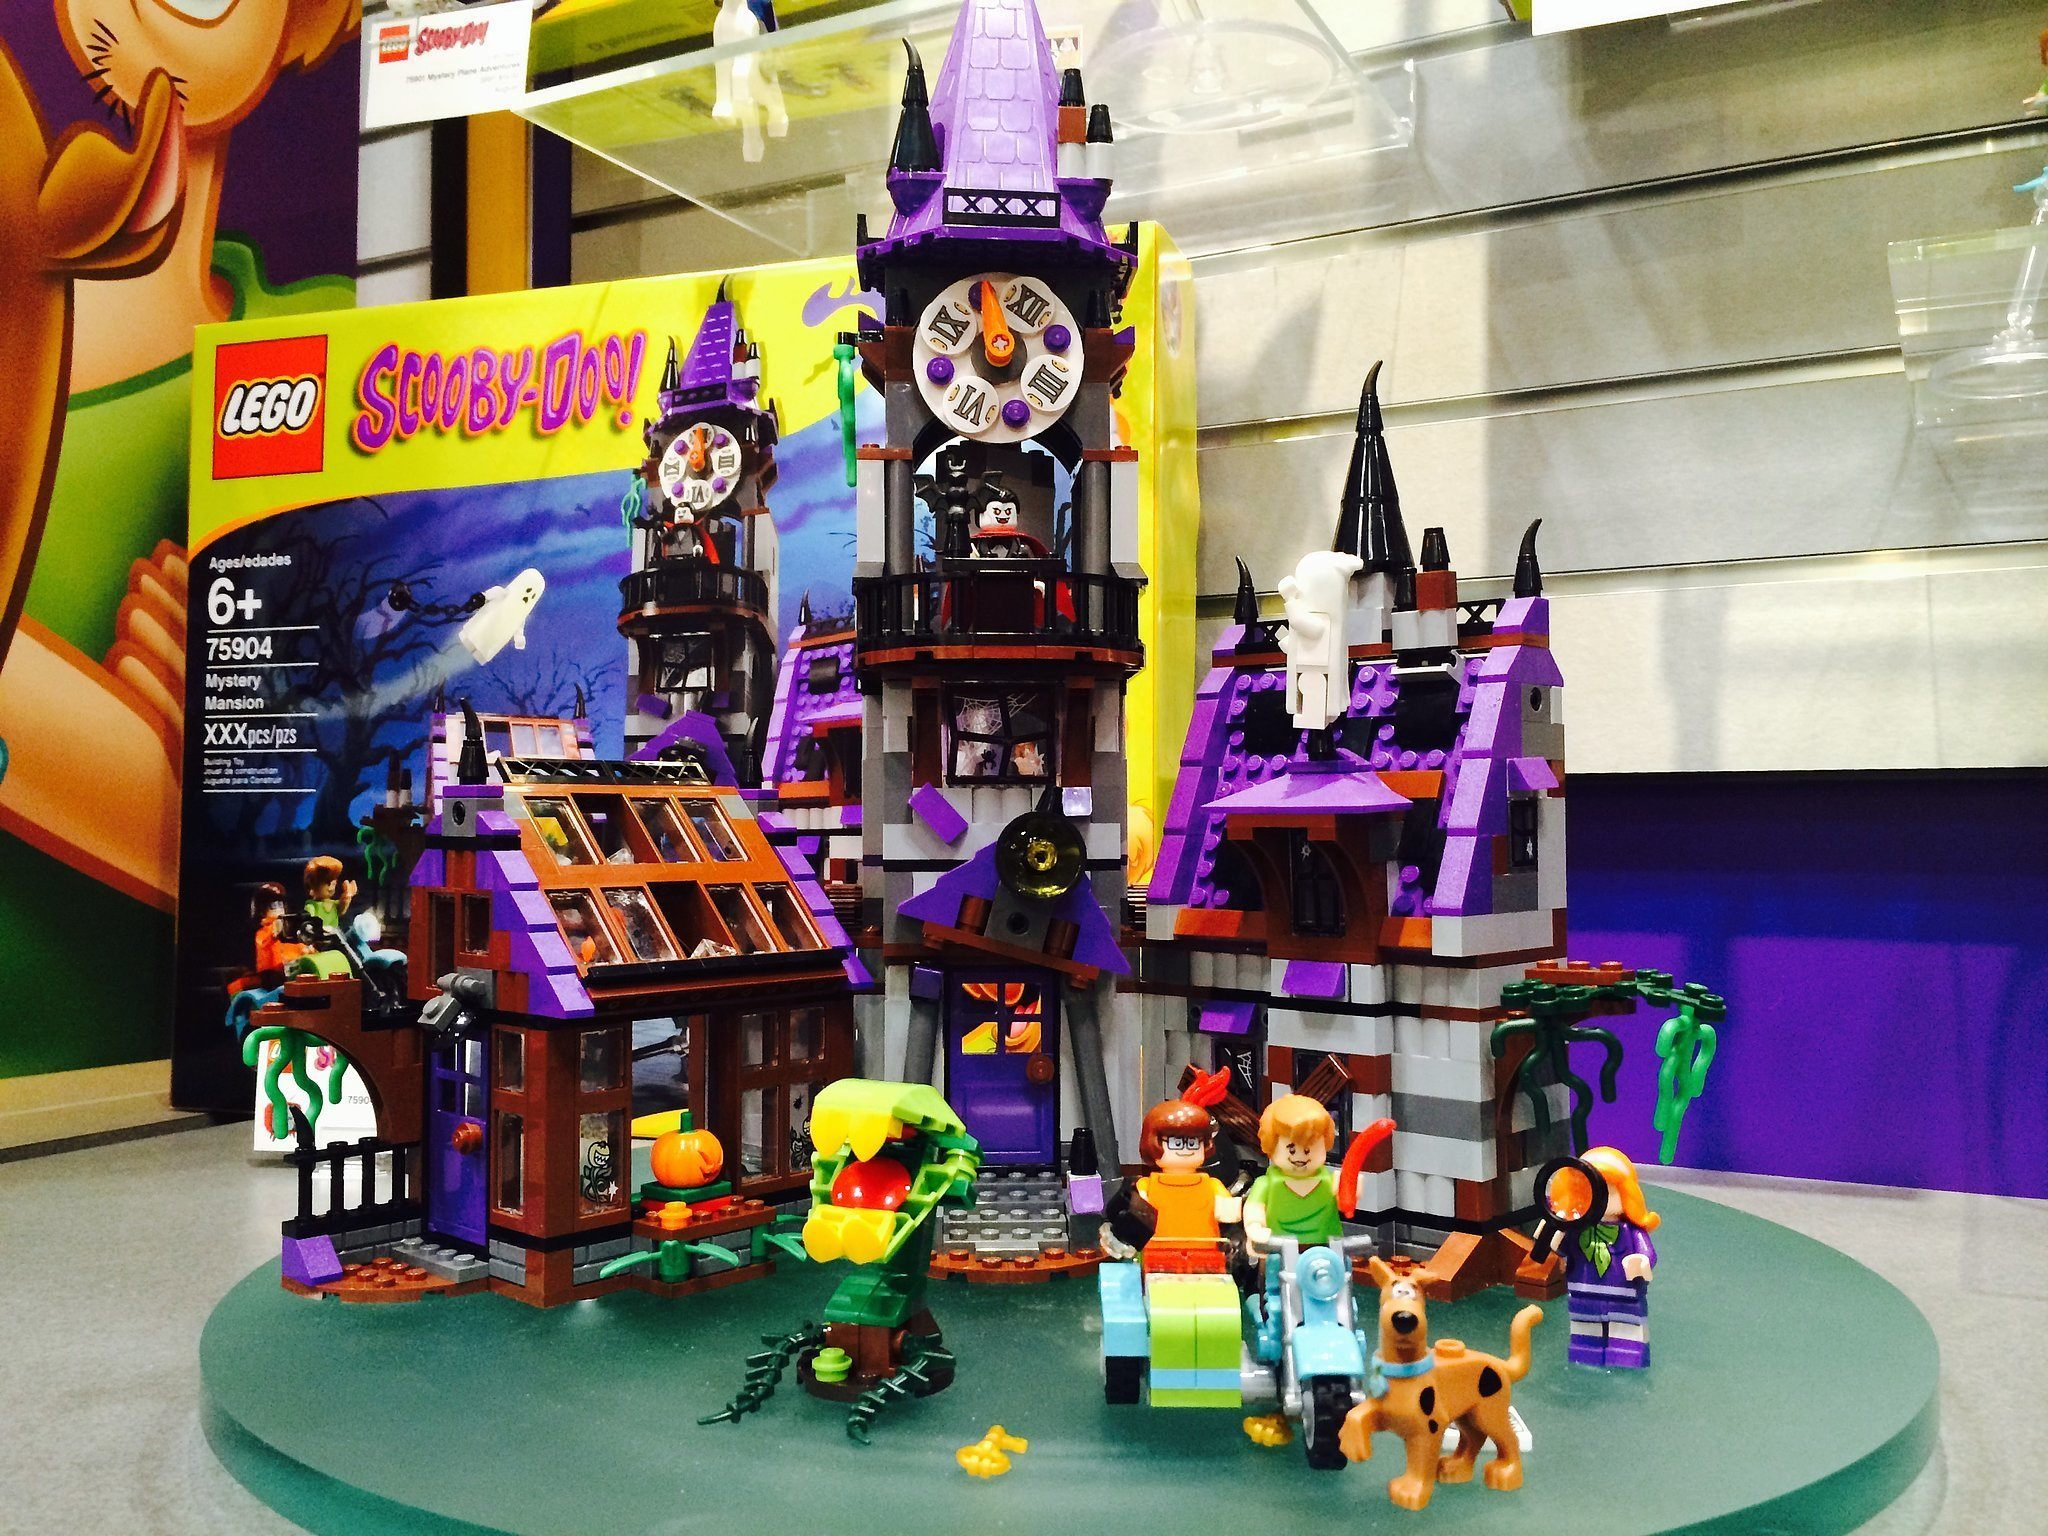 LEGO Scooby Doo Review 2015 Hottest Kids Toys Movie TV Tech